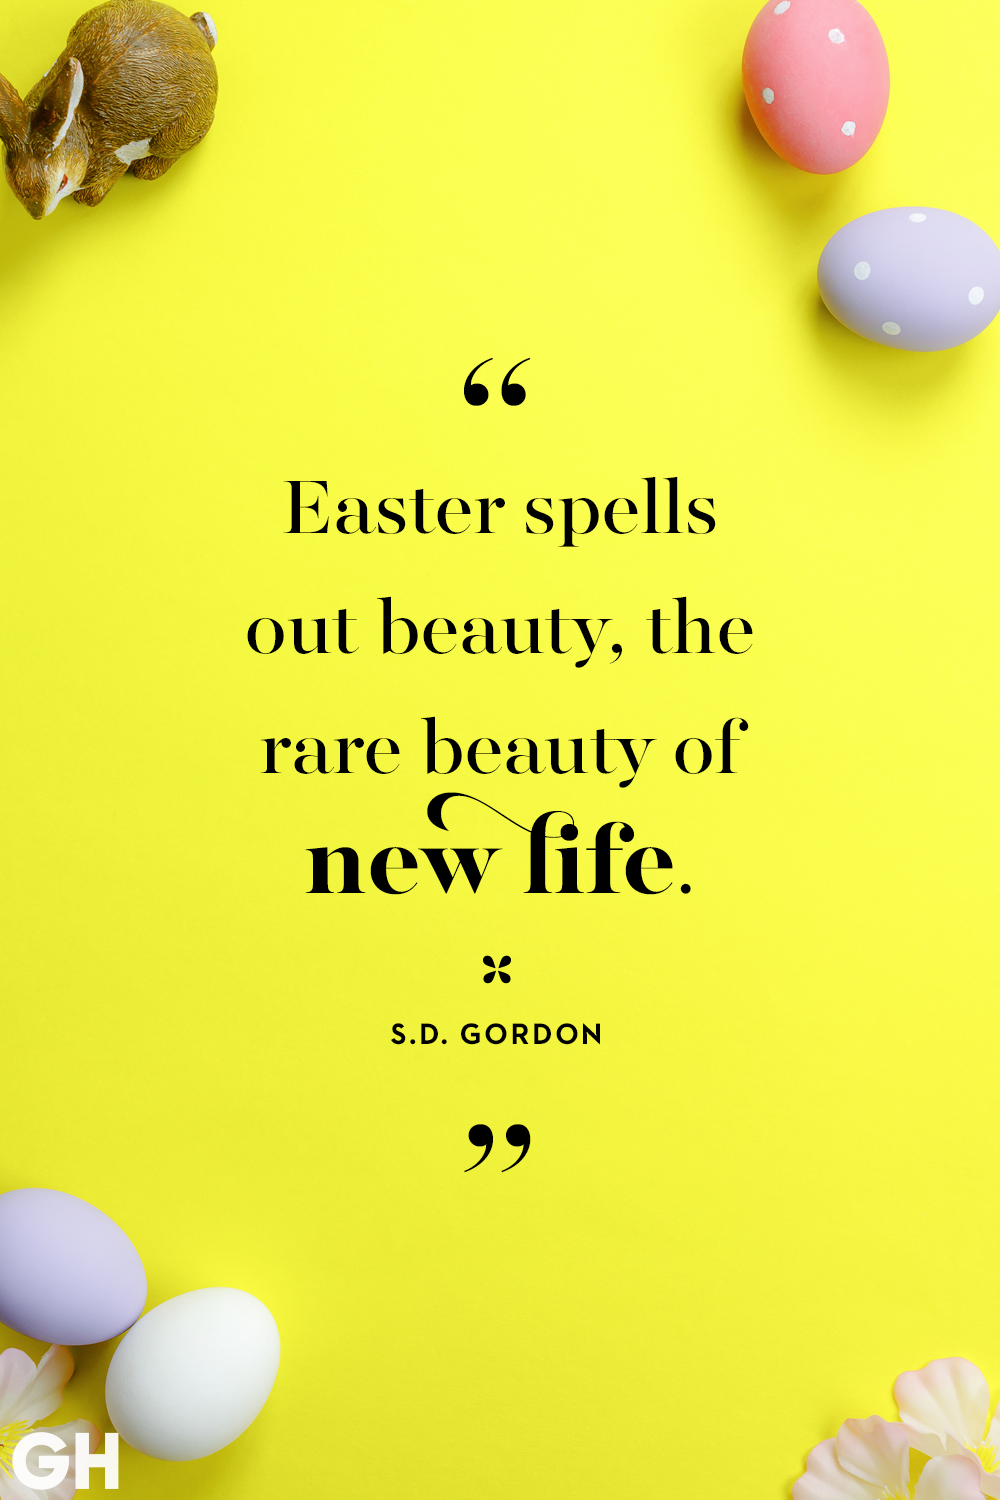 Easter Quotes S.D. Gordon